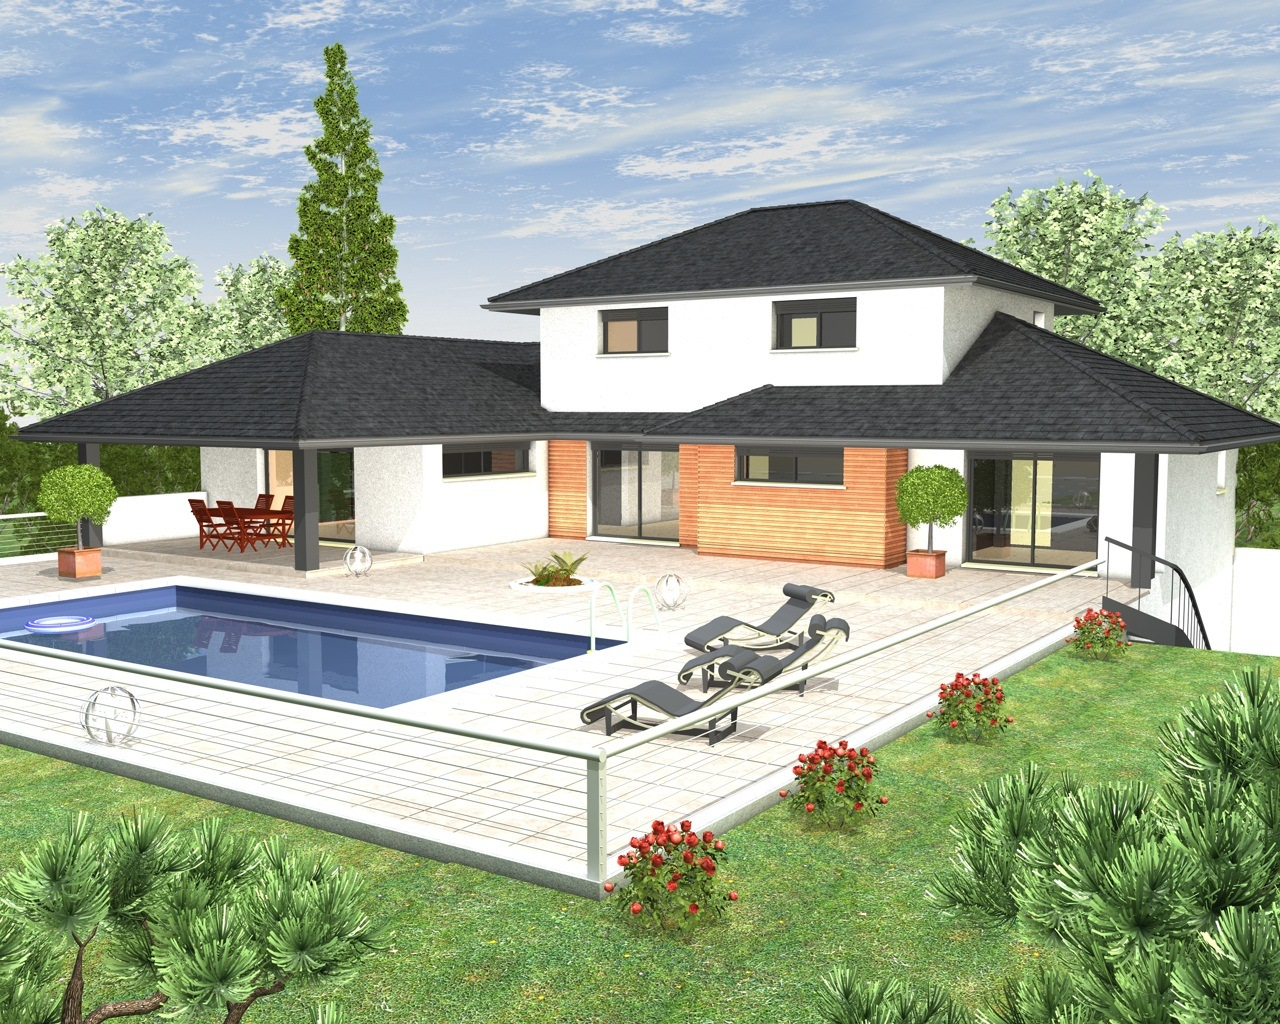 Mod les et plans de maisons mod le tage inspiration for Plans de maison services d architecture